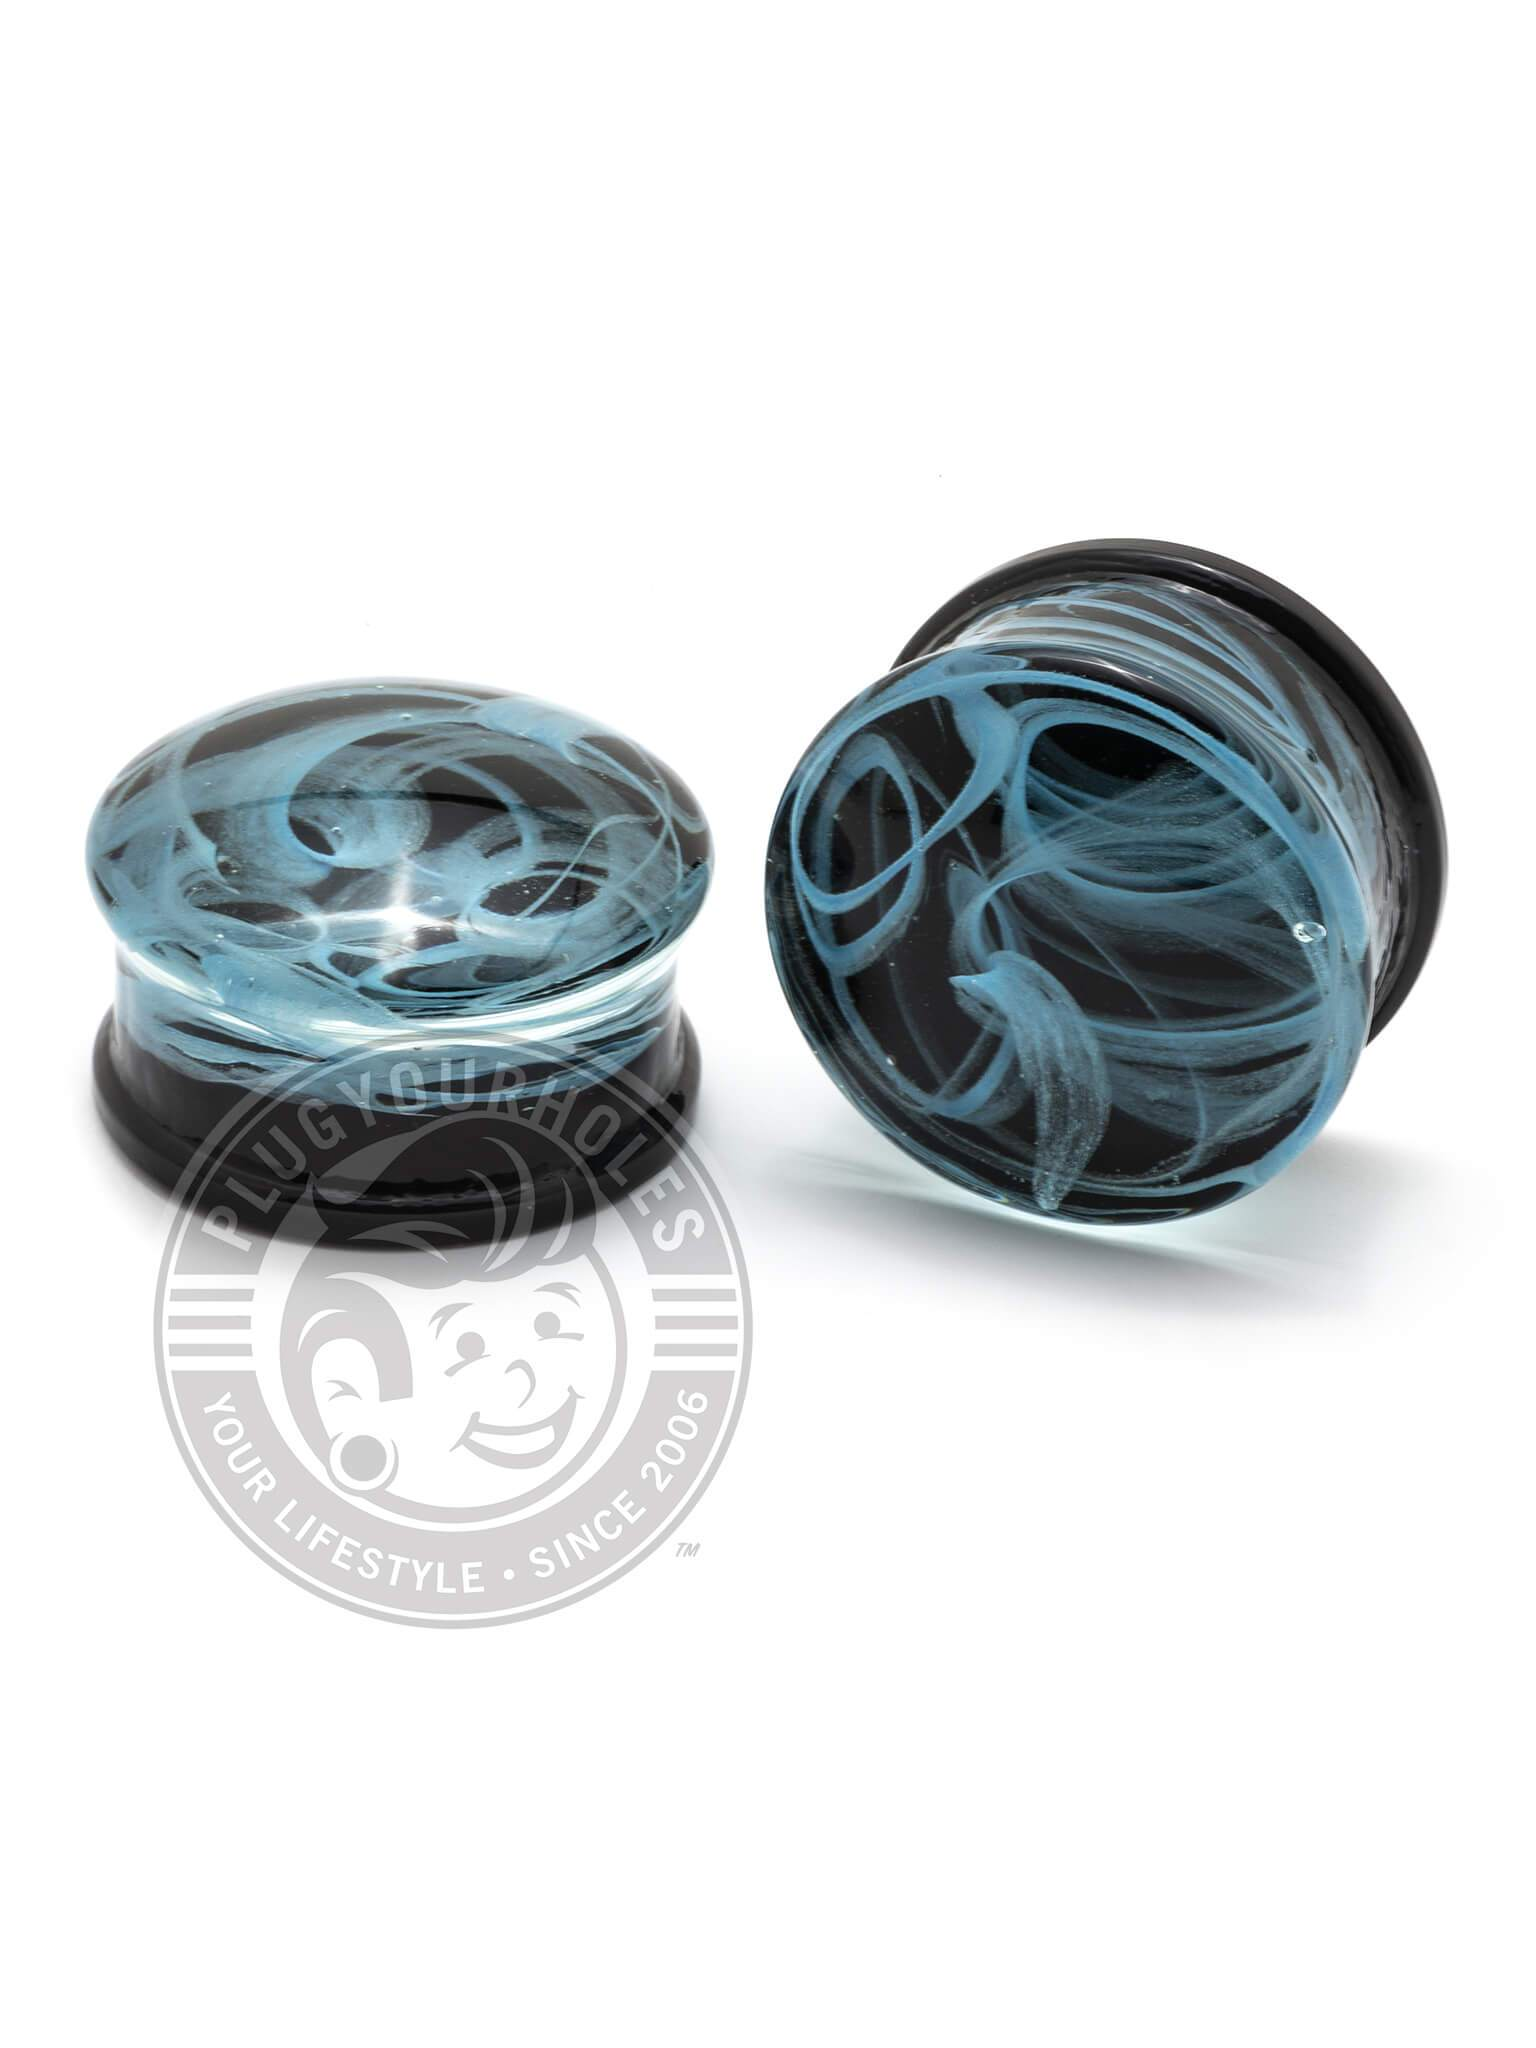 Black & Teal Smoke Pyrex Glass Plugs